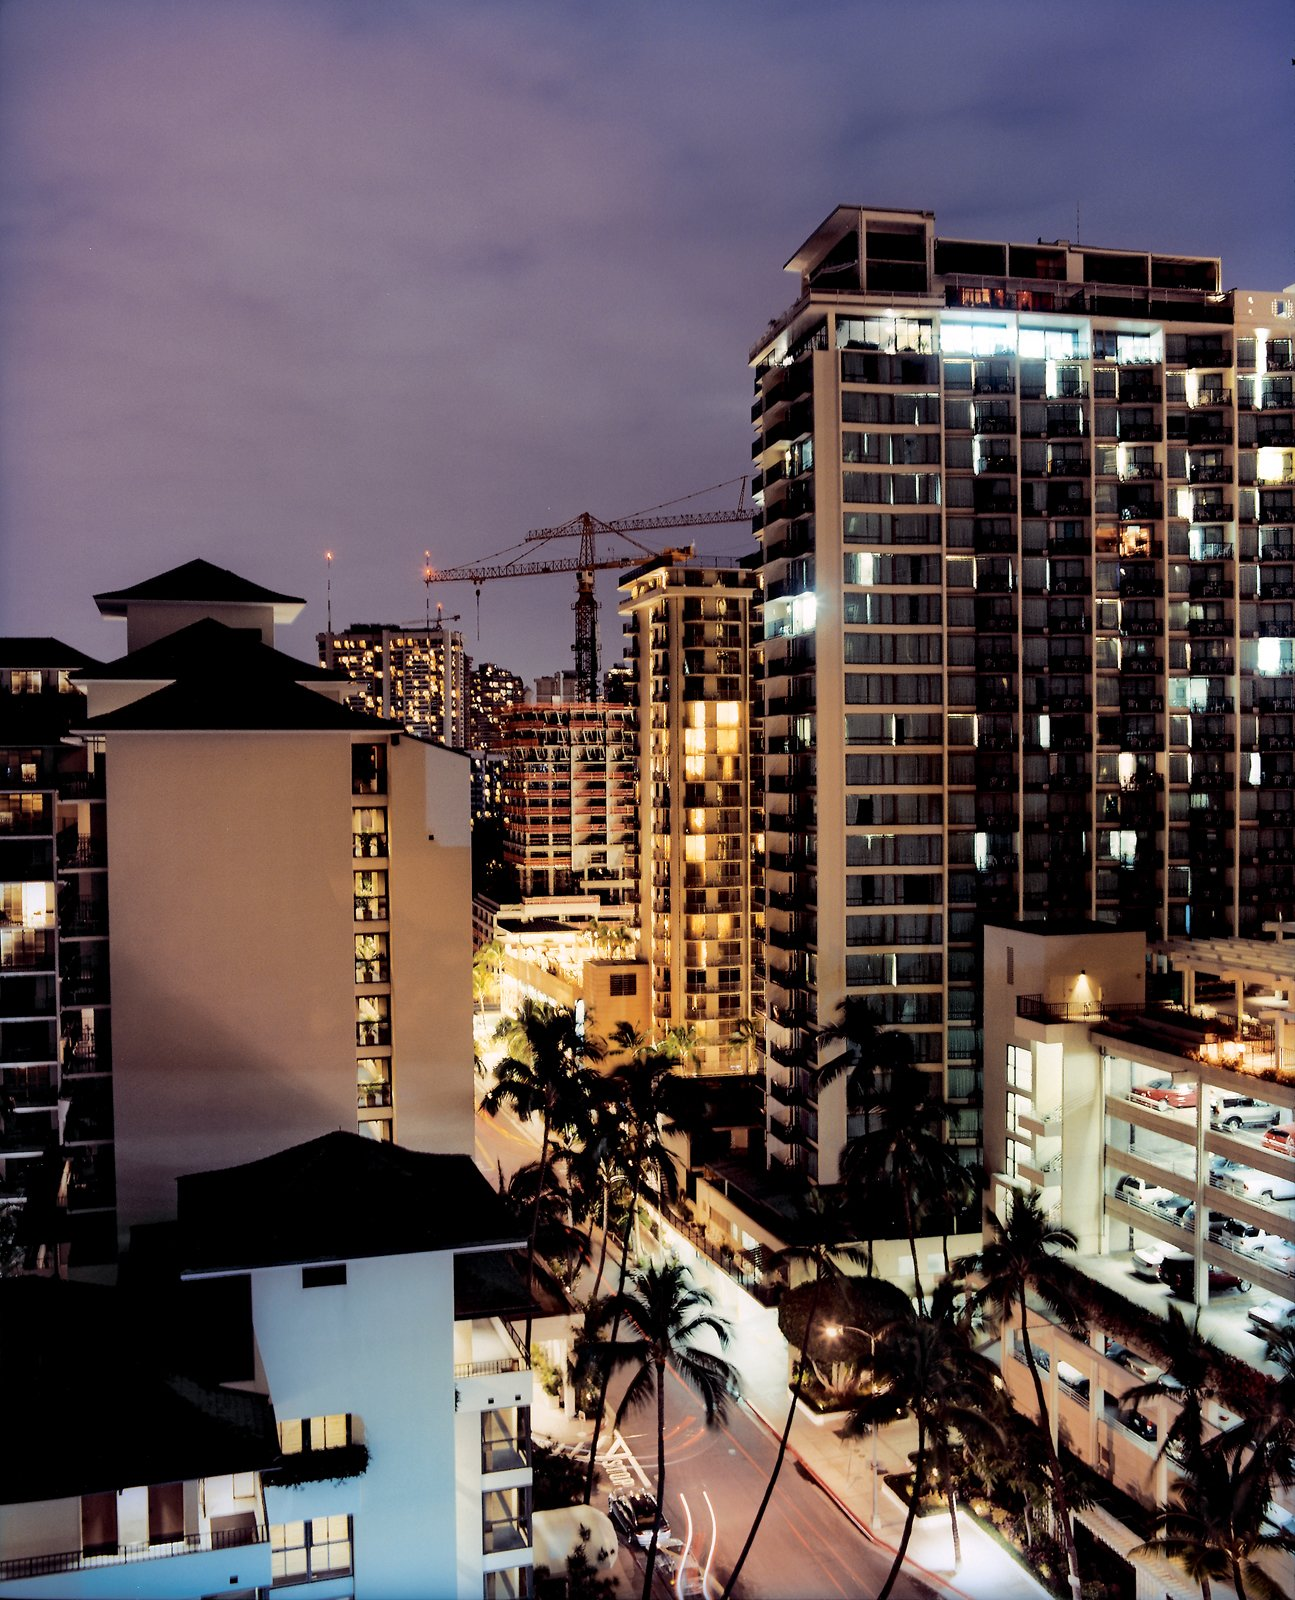 A crane-dotted night sky over Waikiki's condos and hotels attests to the city's recent building boom, as developers rush to accommodate the area's teeming 4.5 million visitors per year.  Photo 5 of 16 in Honolulu, Hawaii